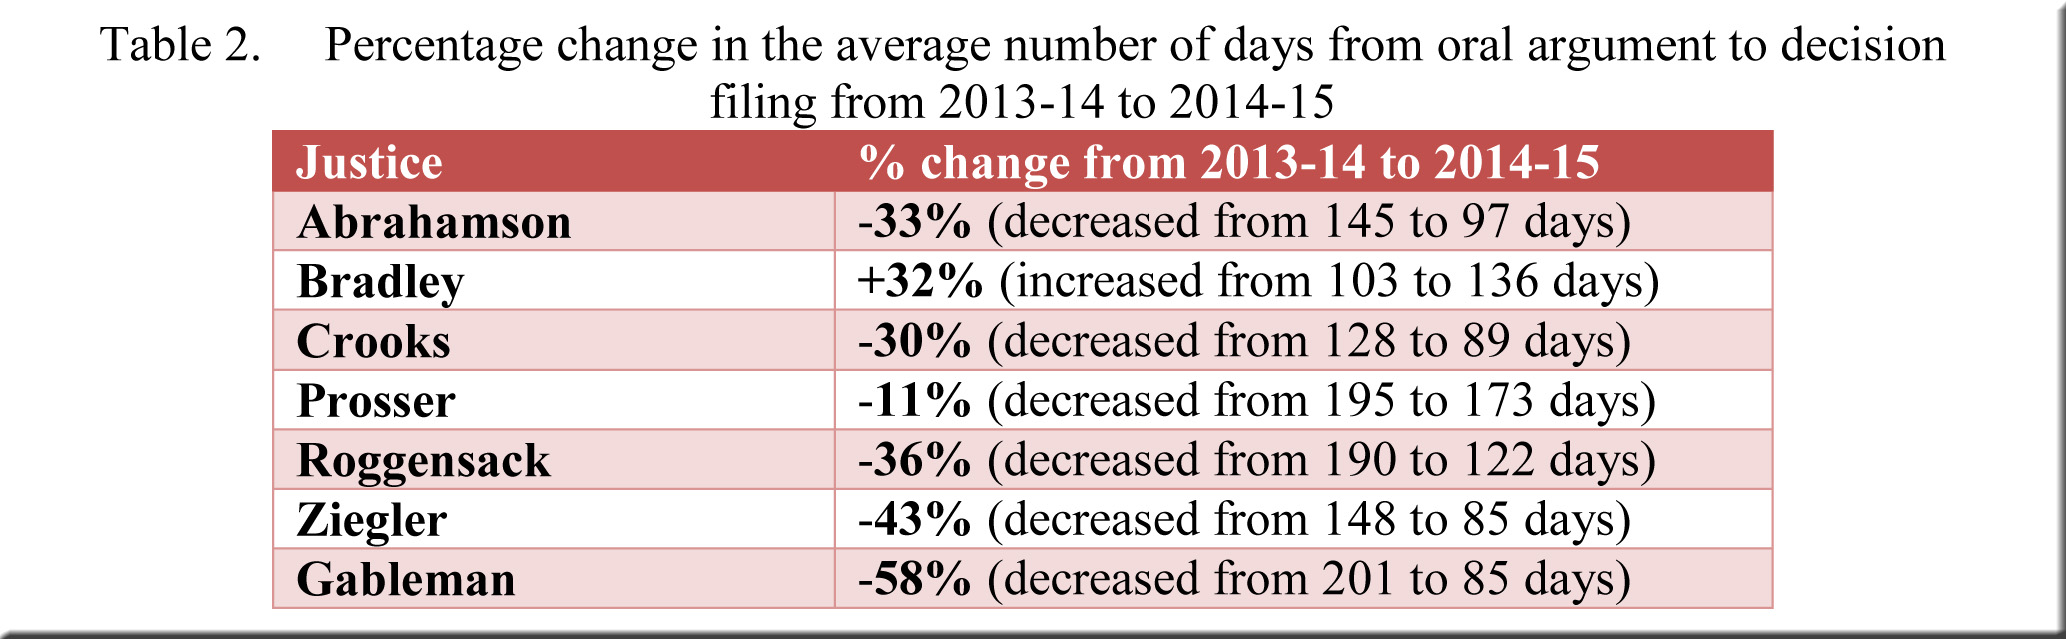 Table 2--Percentage change in average number of days to filing--2013-14 to 2014-15